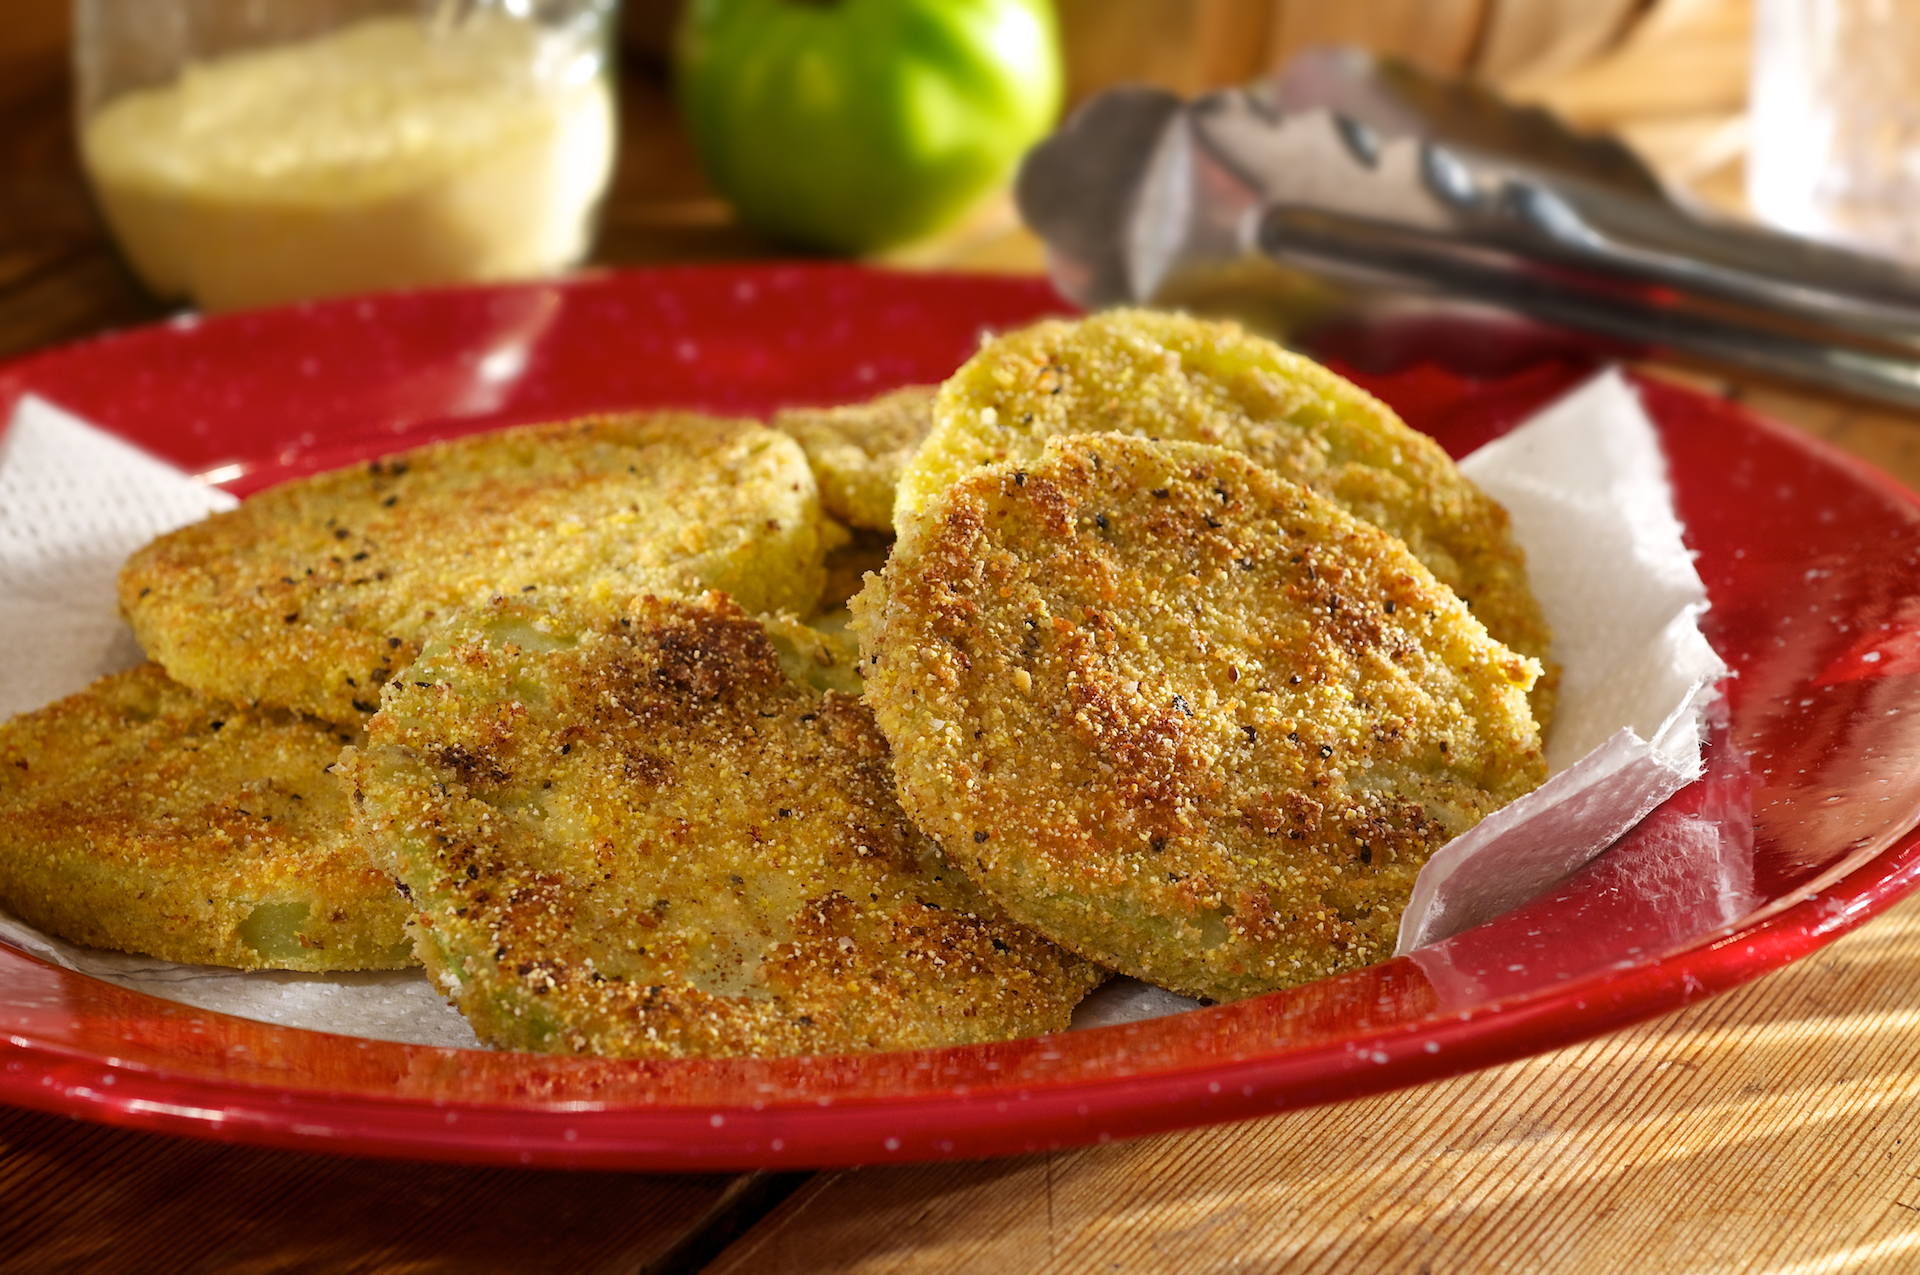 This hearty side dish features thick slices of fresh green tomatoes dipped into egg, flour and cornmeal mixture and pan fried until golden.